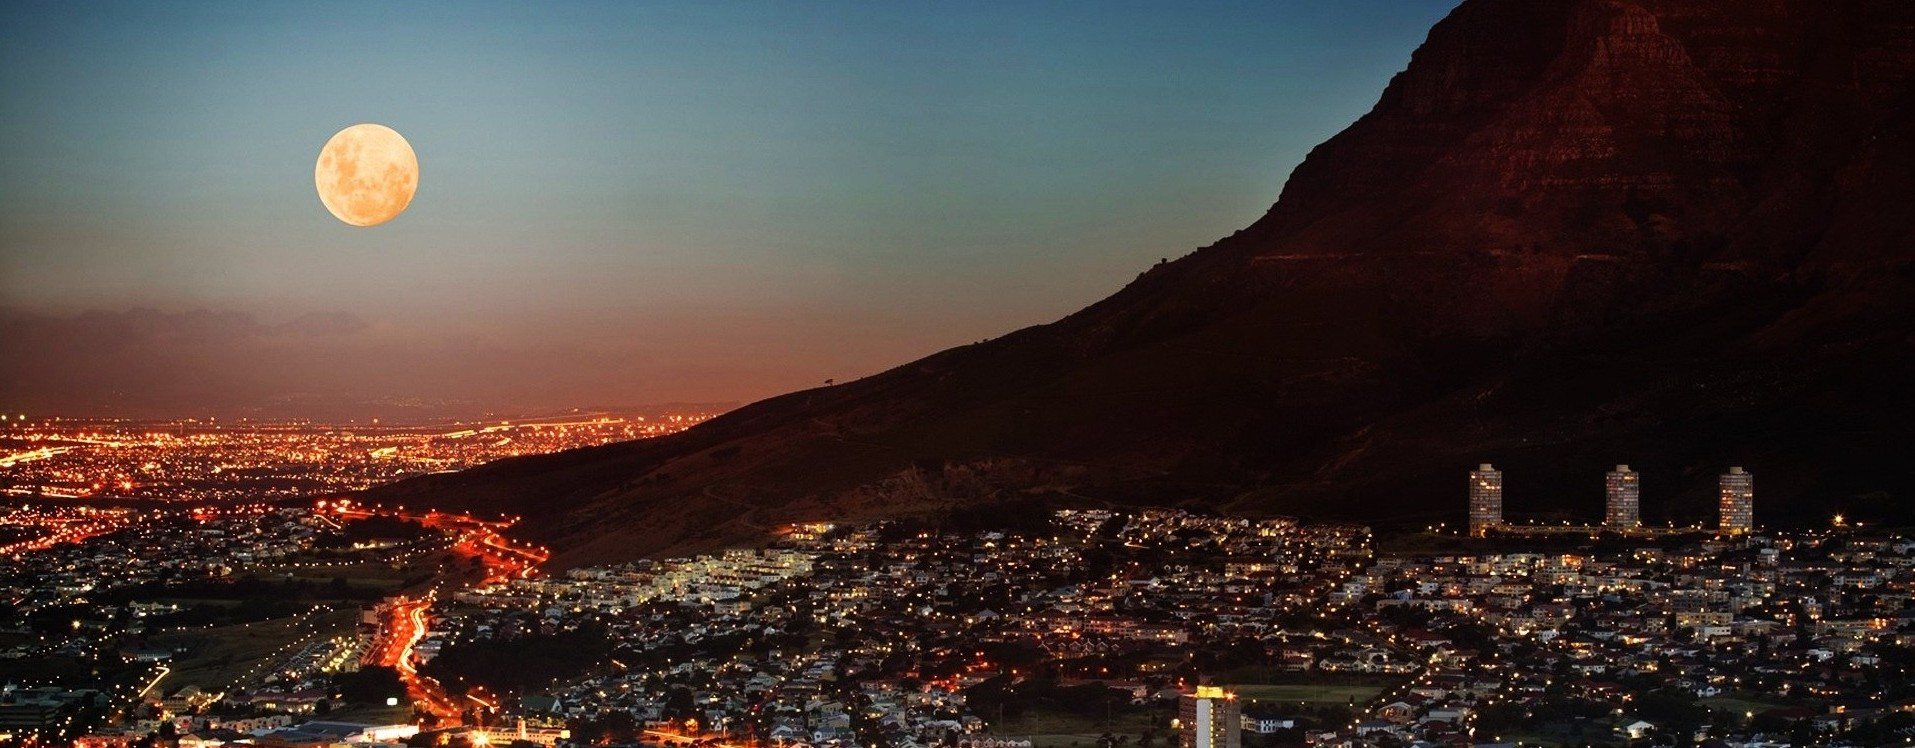 South-Africa-Night-wallpapers-hd-free-download-background-City